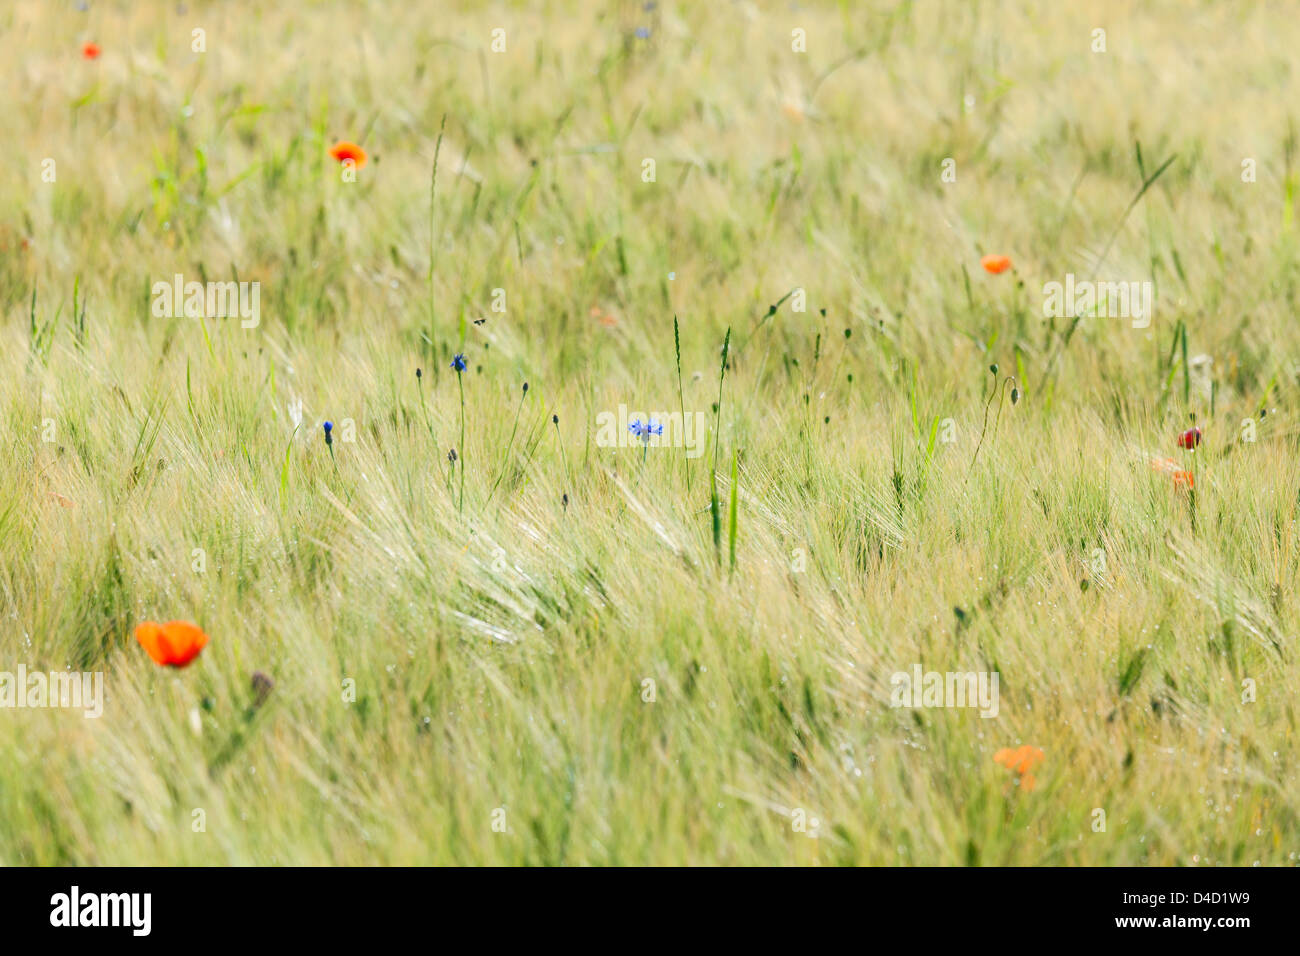 Grain field with poppies and cornflowers Stock Photo